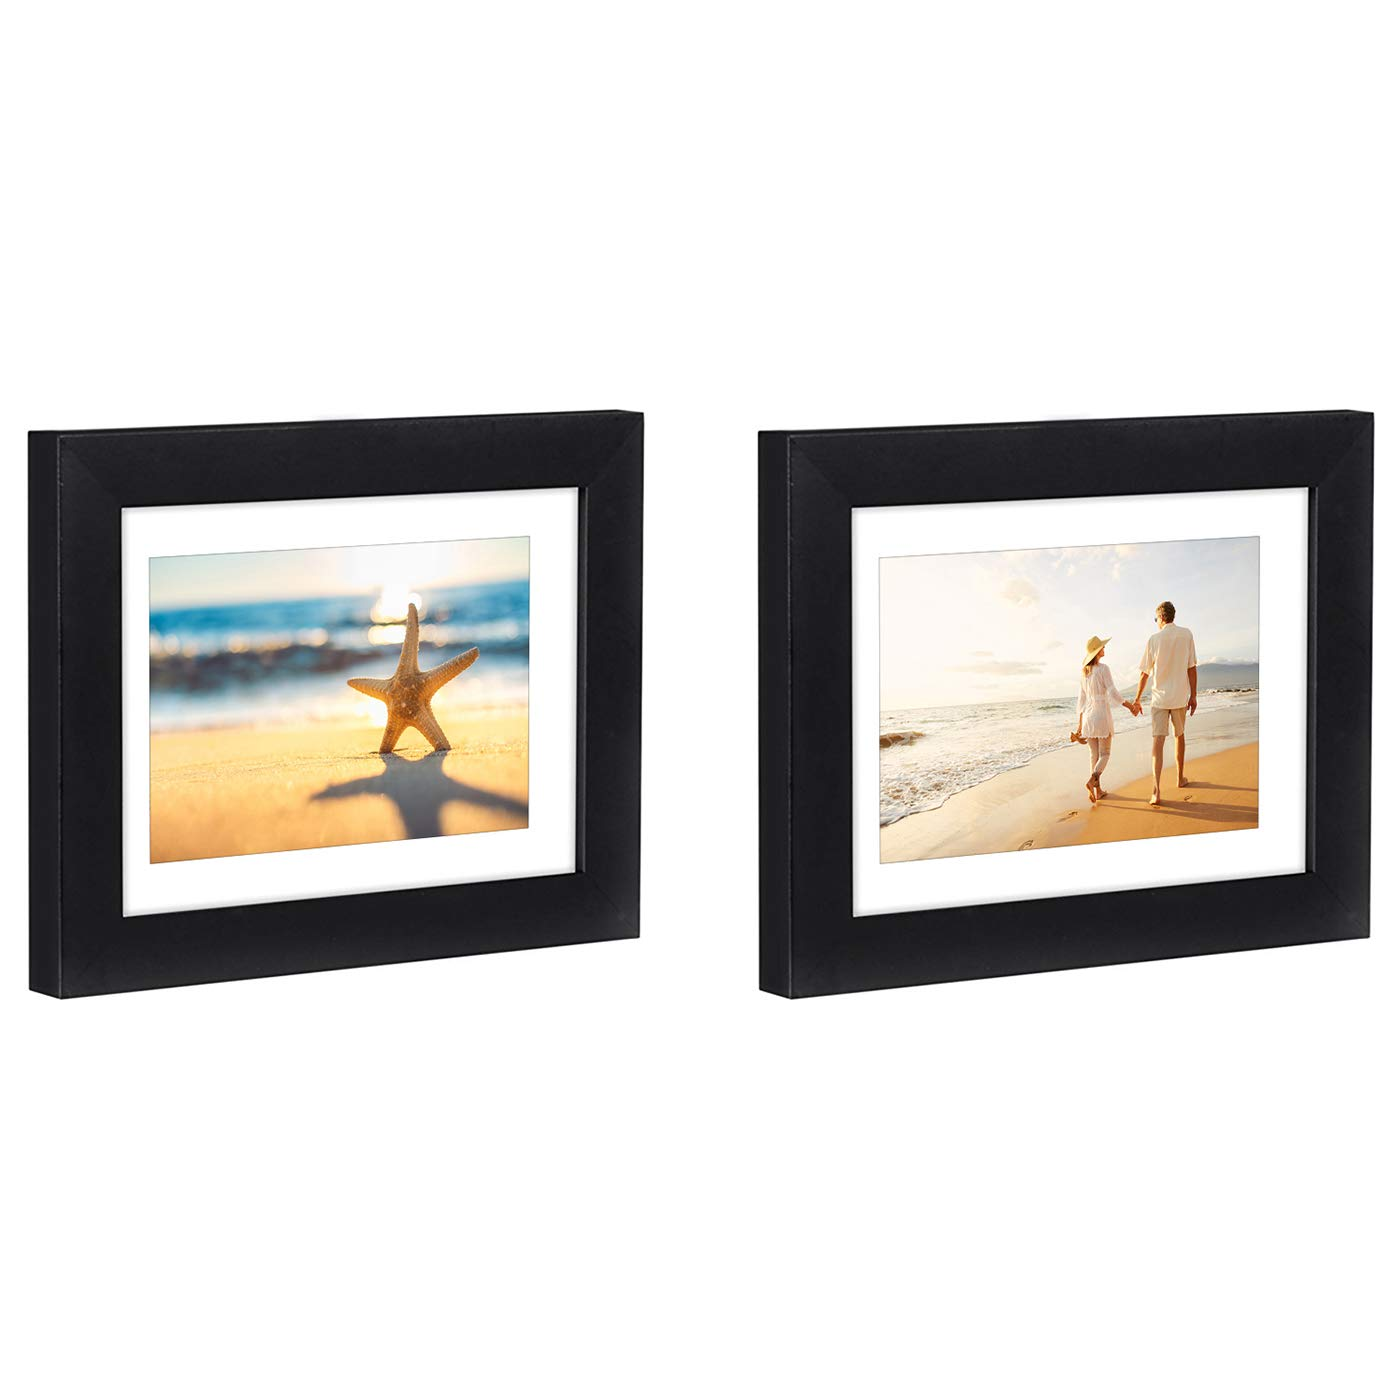 Americanflat 2 Pack - 5x7 Black Tabletop Frames - Display Pictures 4x6 with Mat - Display Pictures 5x7 Without Mat - Glass Fronts, Easel Stands, Ready to Display on Tabletop by Americanflat